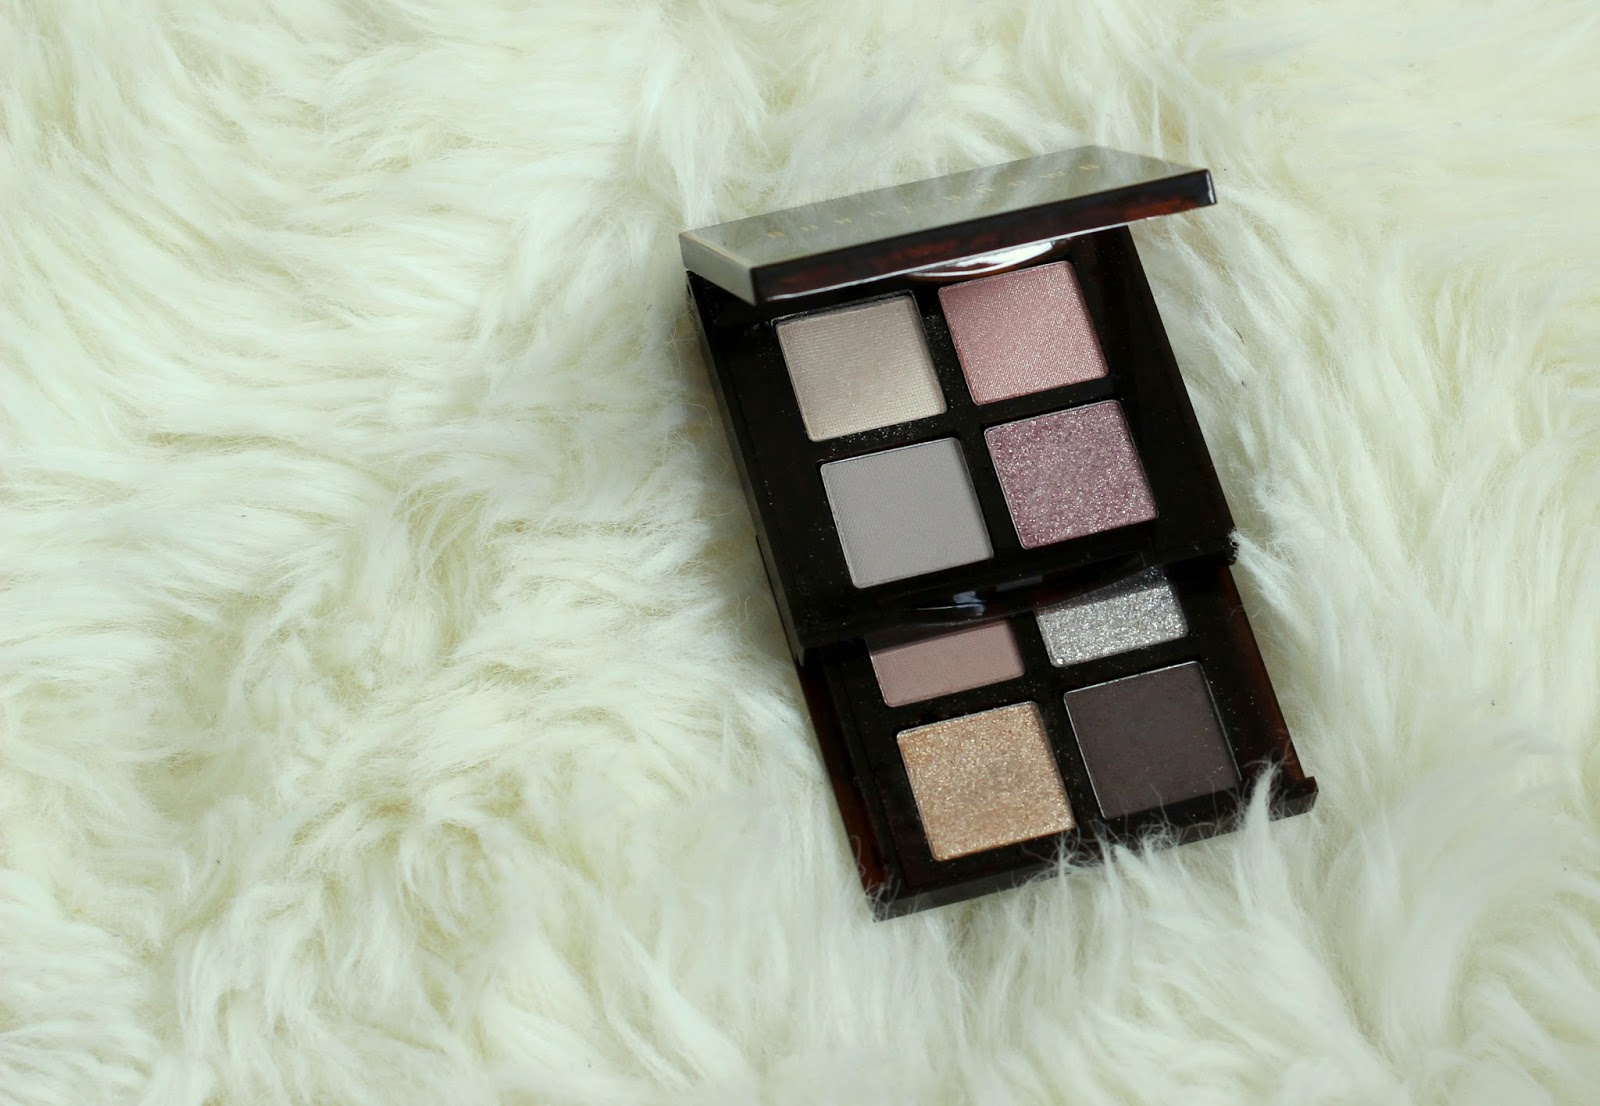 Bobbi Brown Limited Edition Mini Eye Palette review